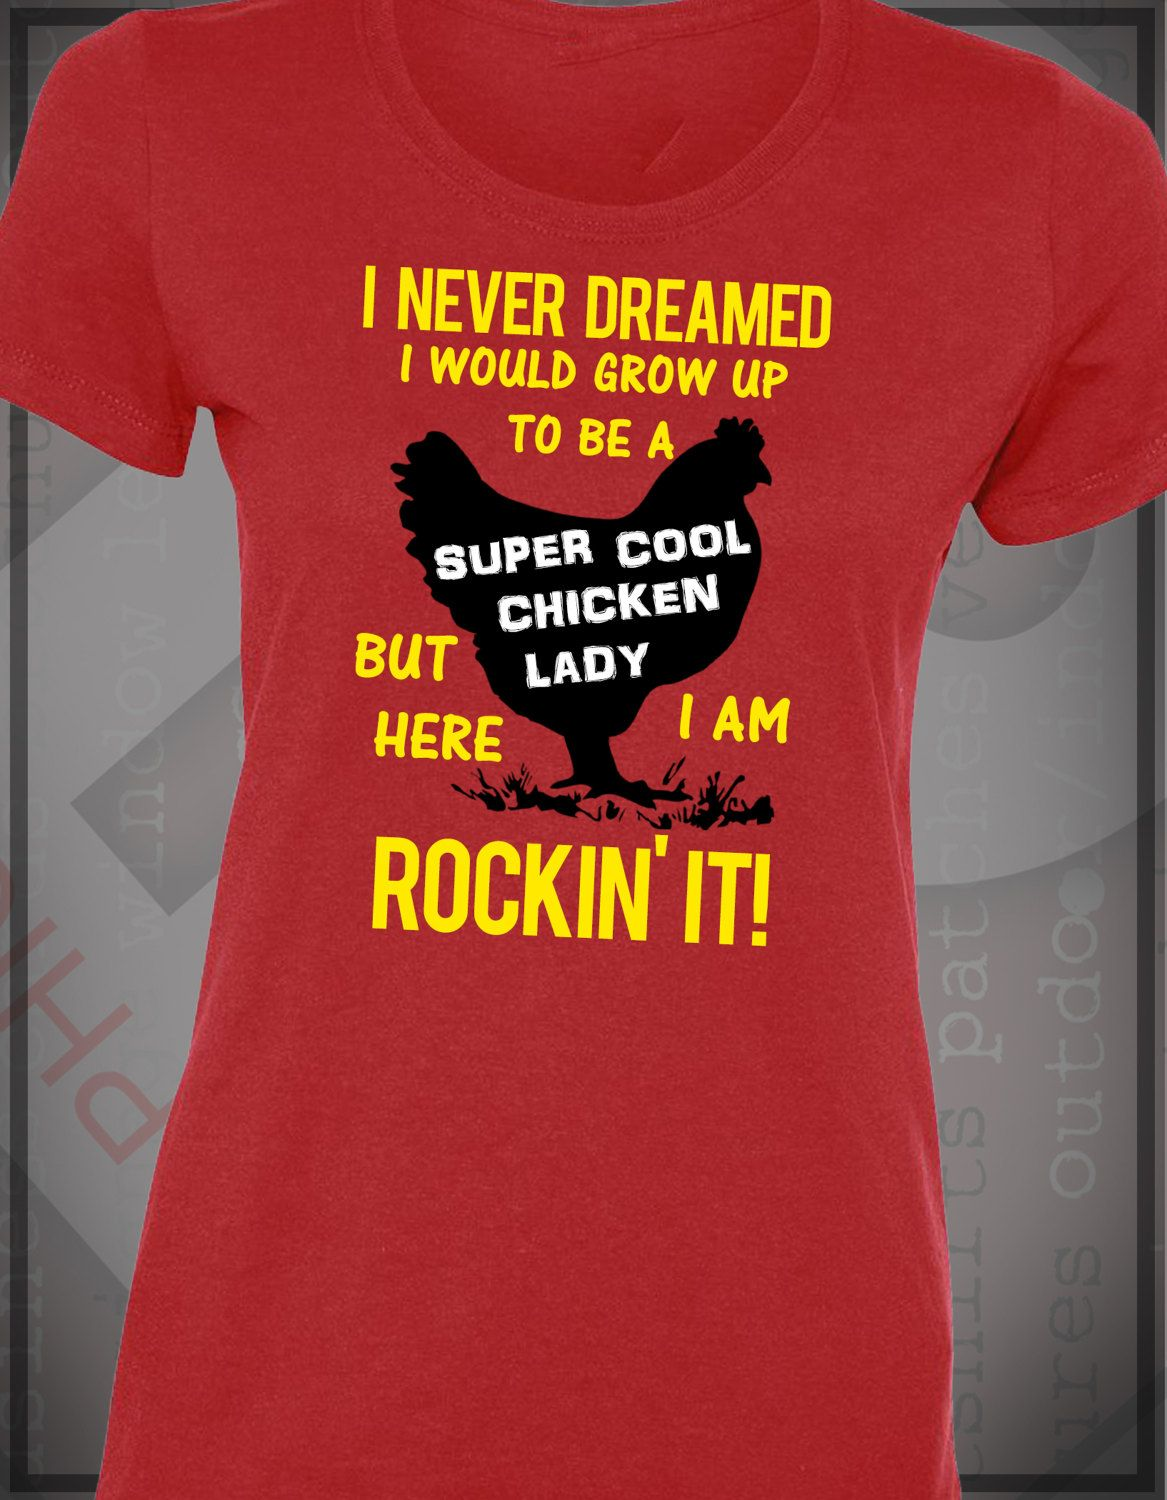 Super Cool Chick Lady - T-Shirt - MADE IN MICHIGAN